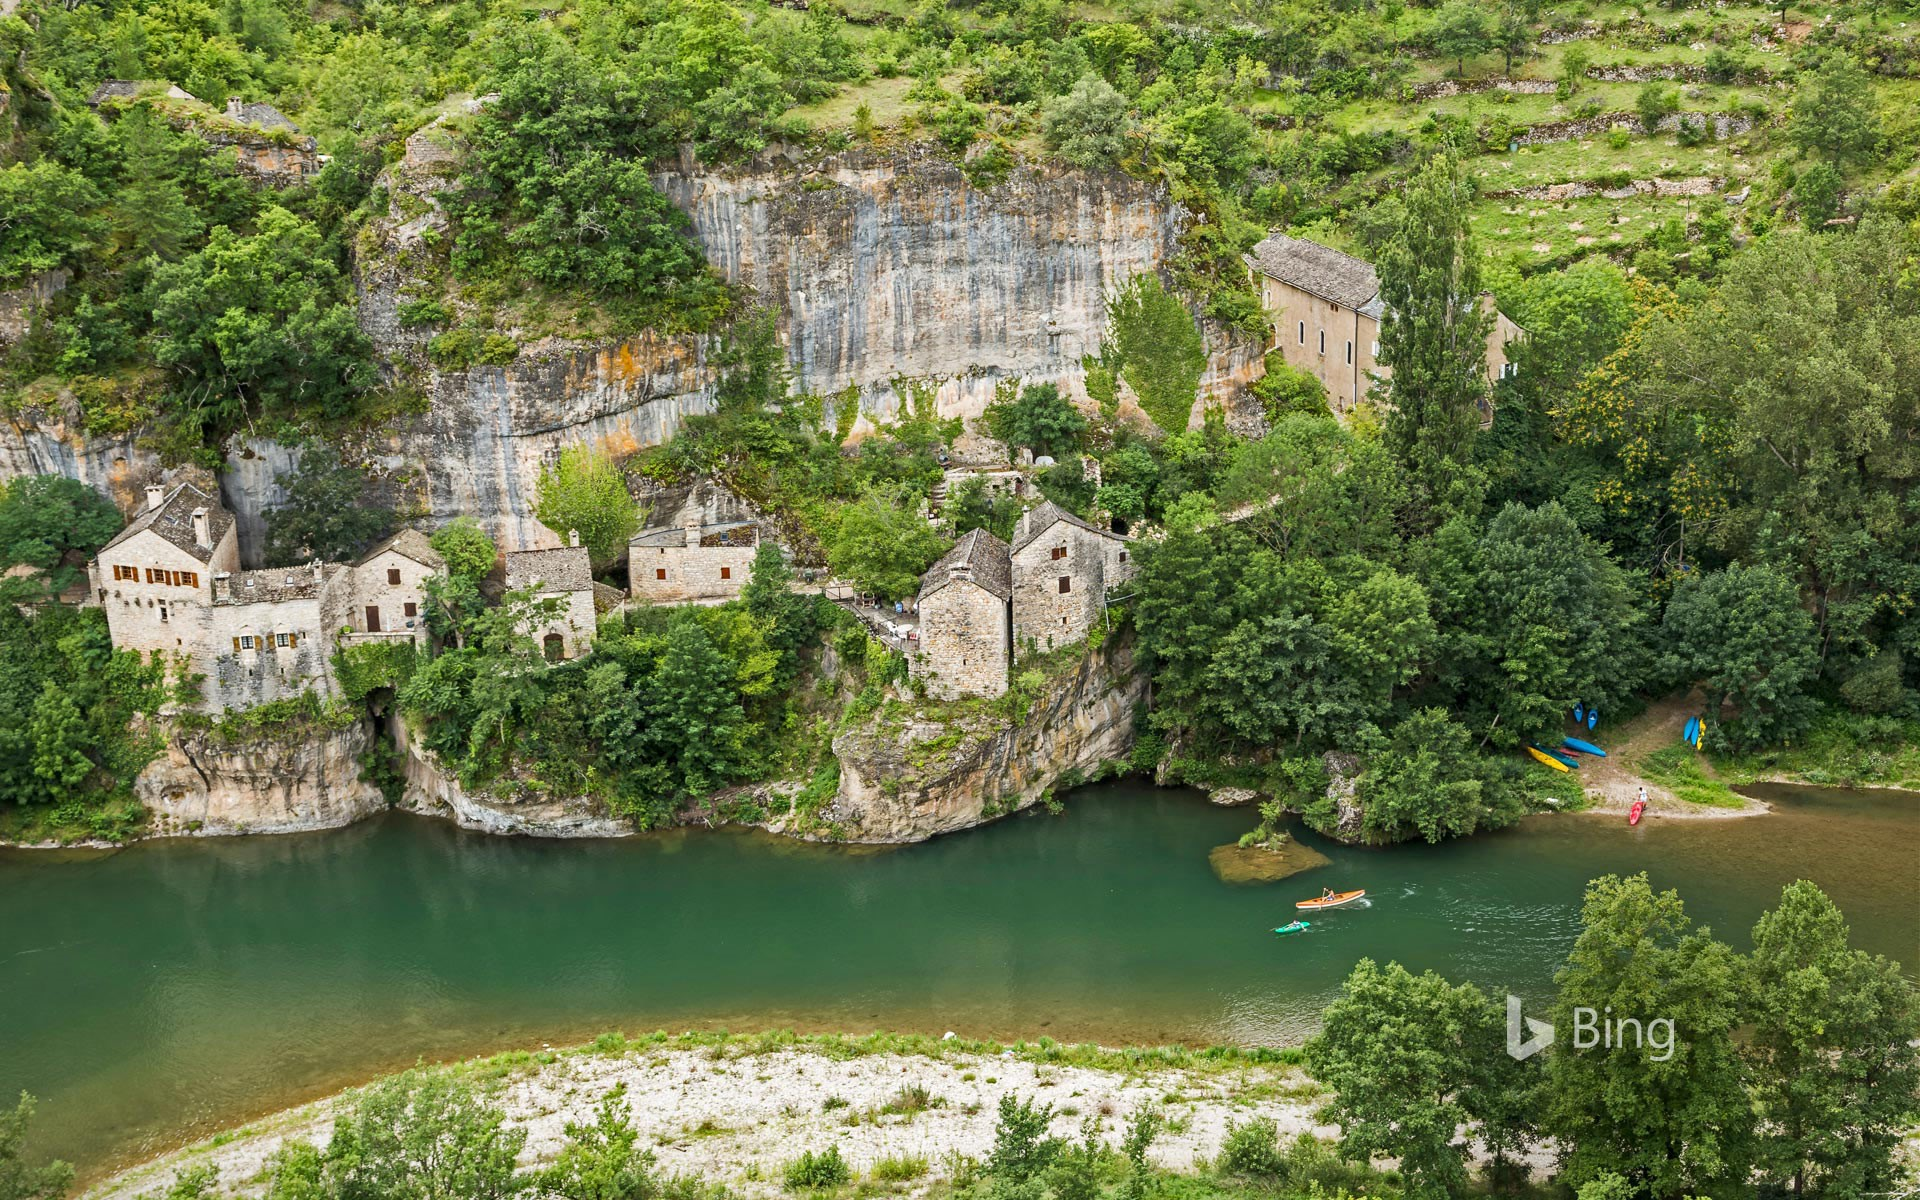 Castelbouc and the Gorges du Tarn along the Tarn River in France